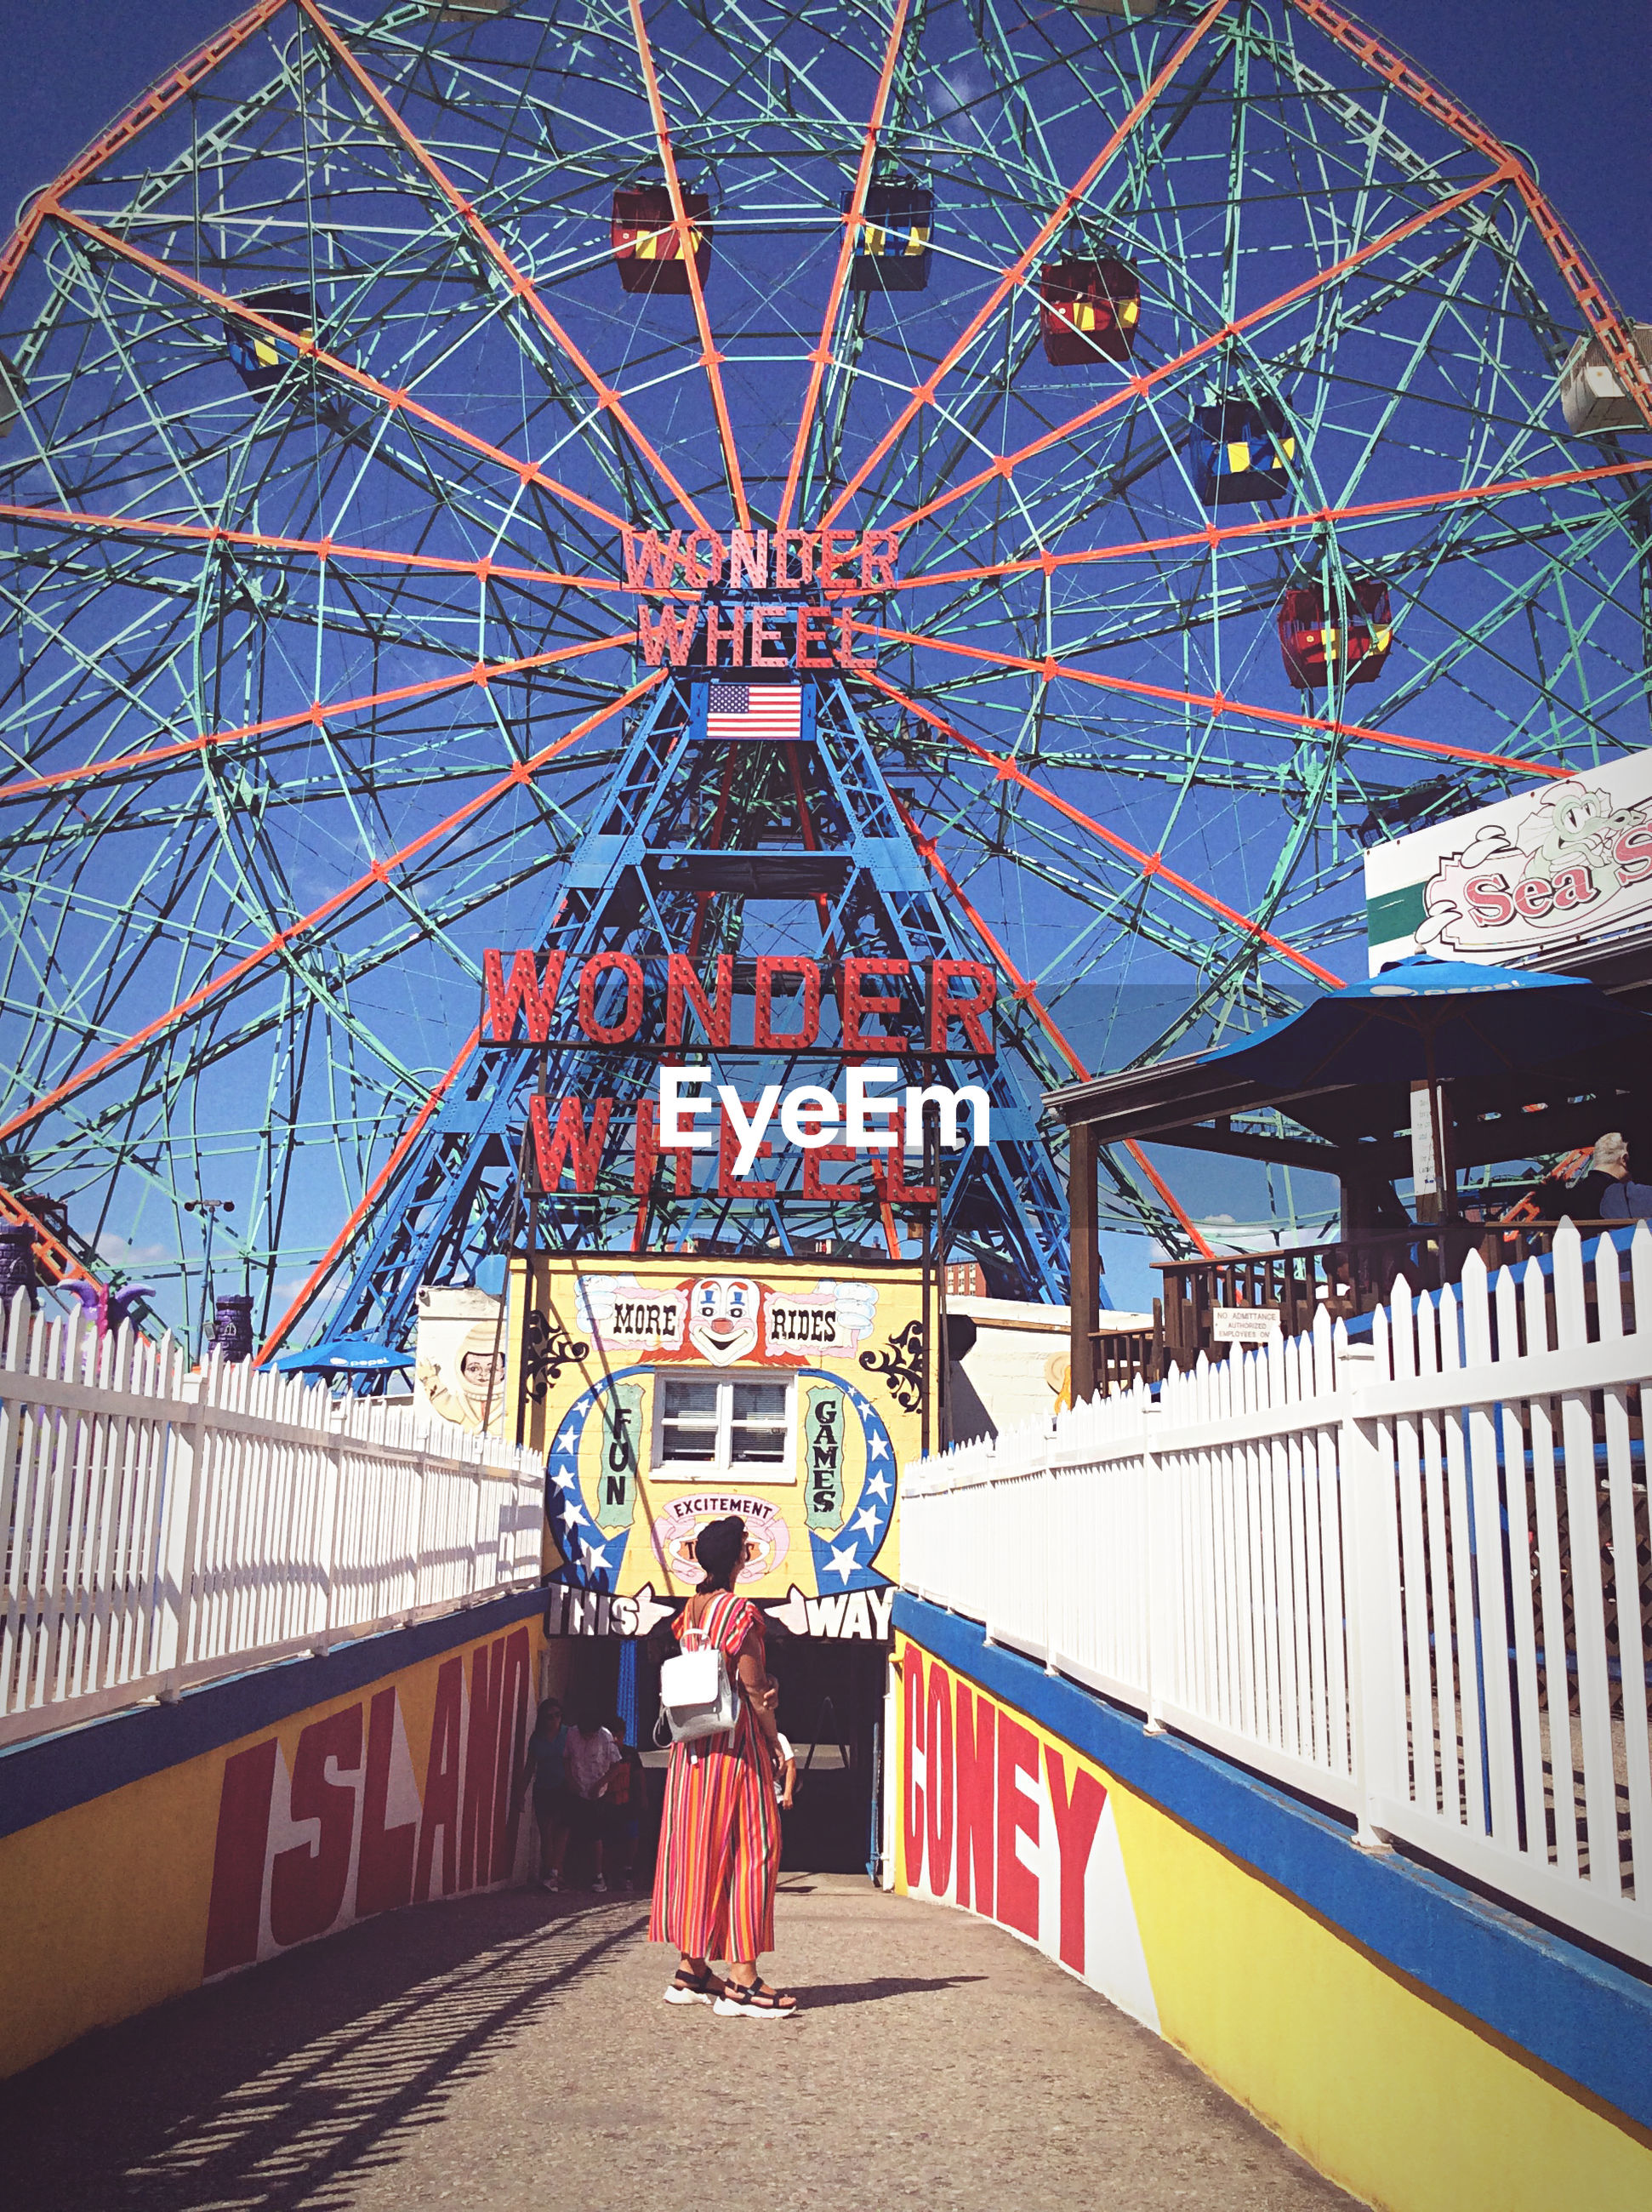 REAR VIEW OF WOMAN STANDING ON AMUSEMENT PARK